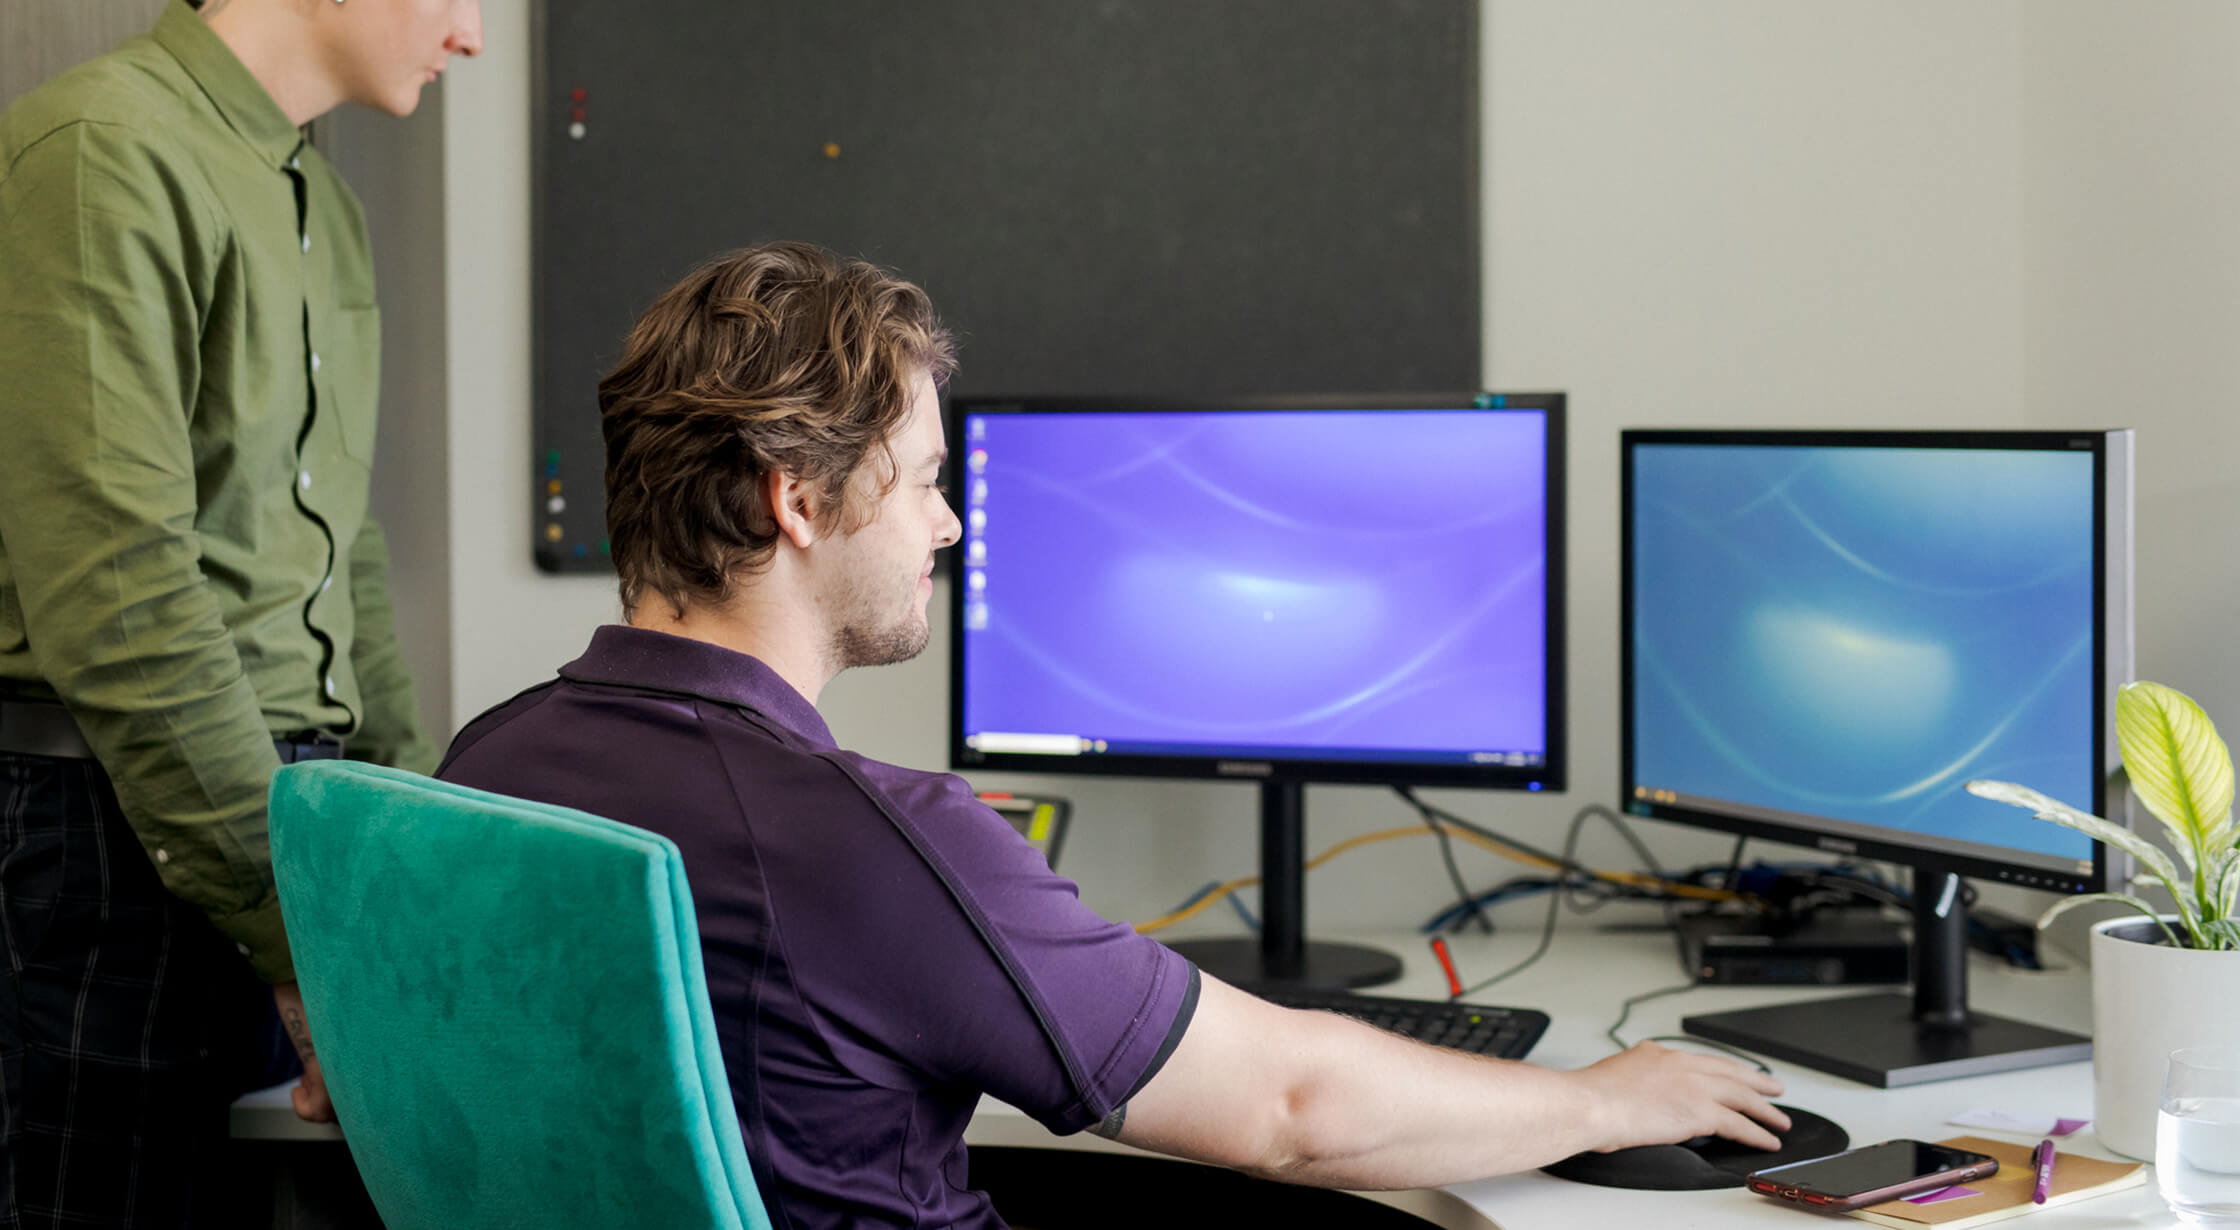 Two men look over at a set of desktop monitors. The man on the left is wearing a green shirt and standing. The man on the right is wearing a blue shirt and is seated behind the computer.